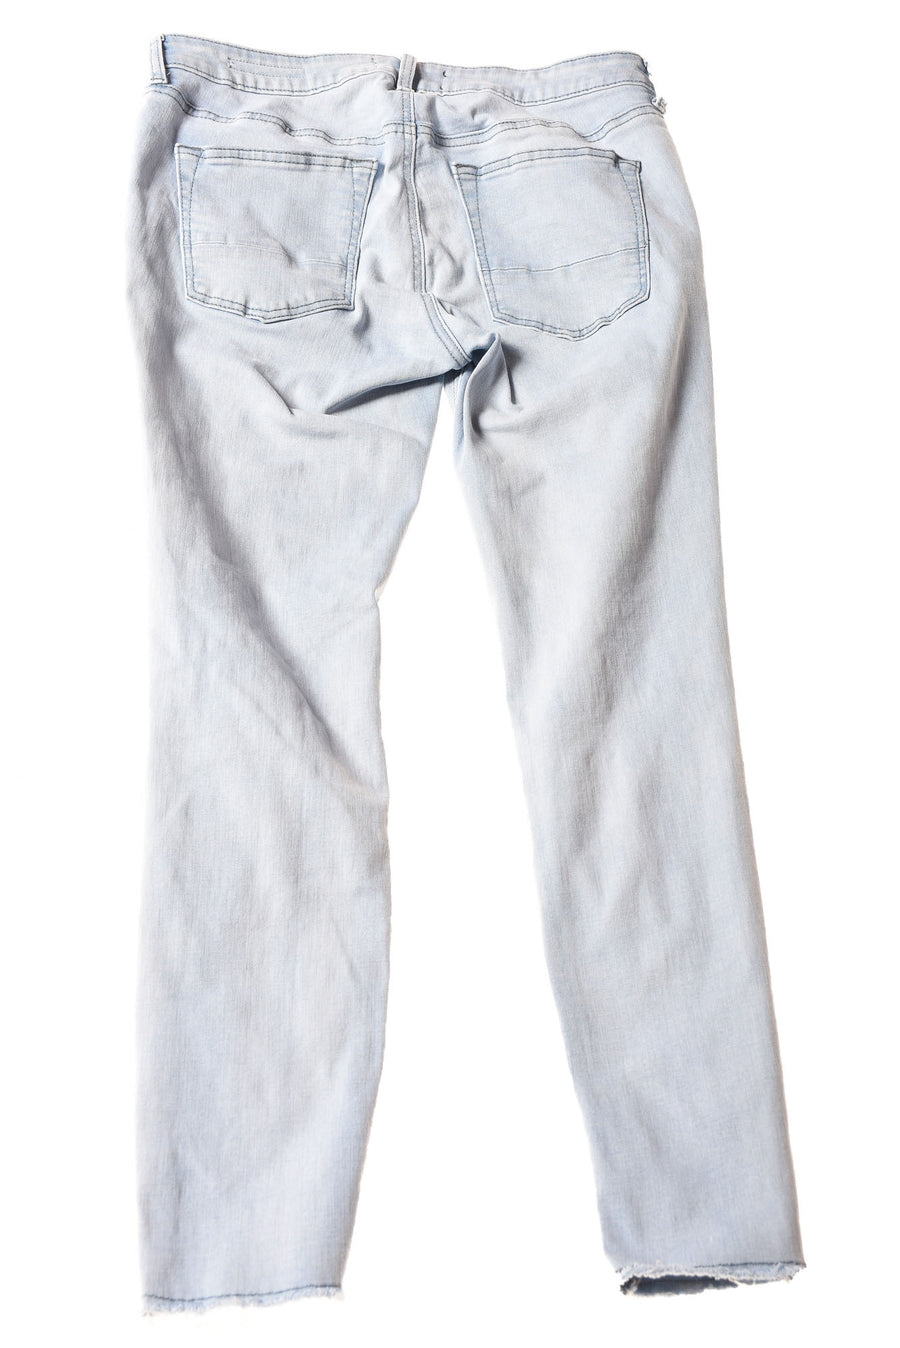 USED Pacsun Men's Jeans 32x30 Light Blue